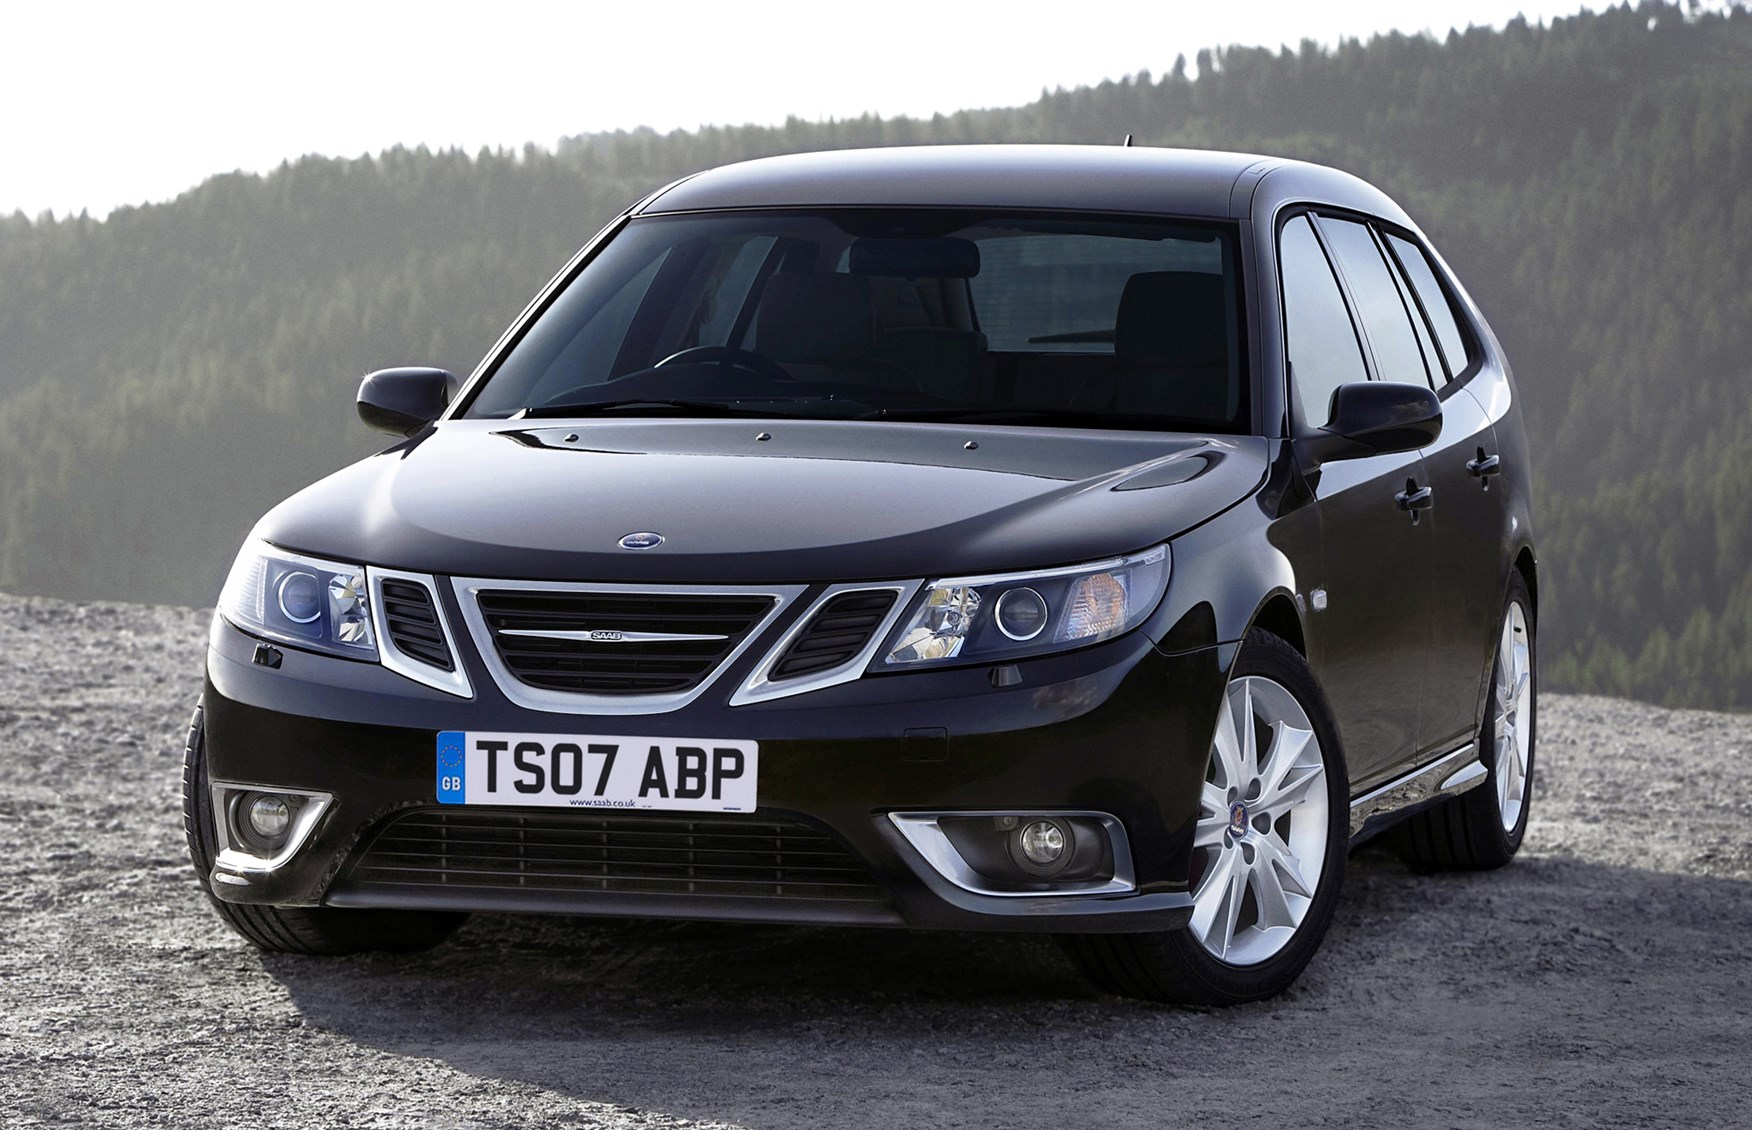 saab 9 3 sportwagon 2005 2011 features equipment and accessories parkers. Black Bedroom Furniture Sets. Home Design Ideas